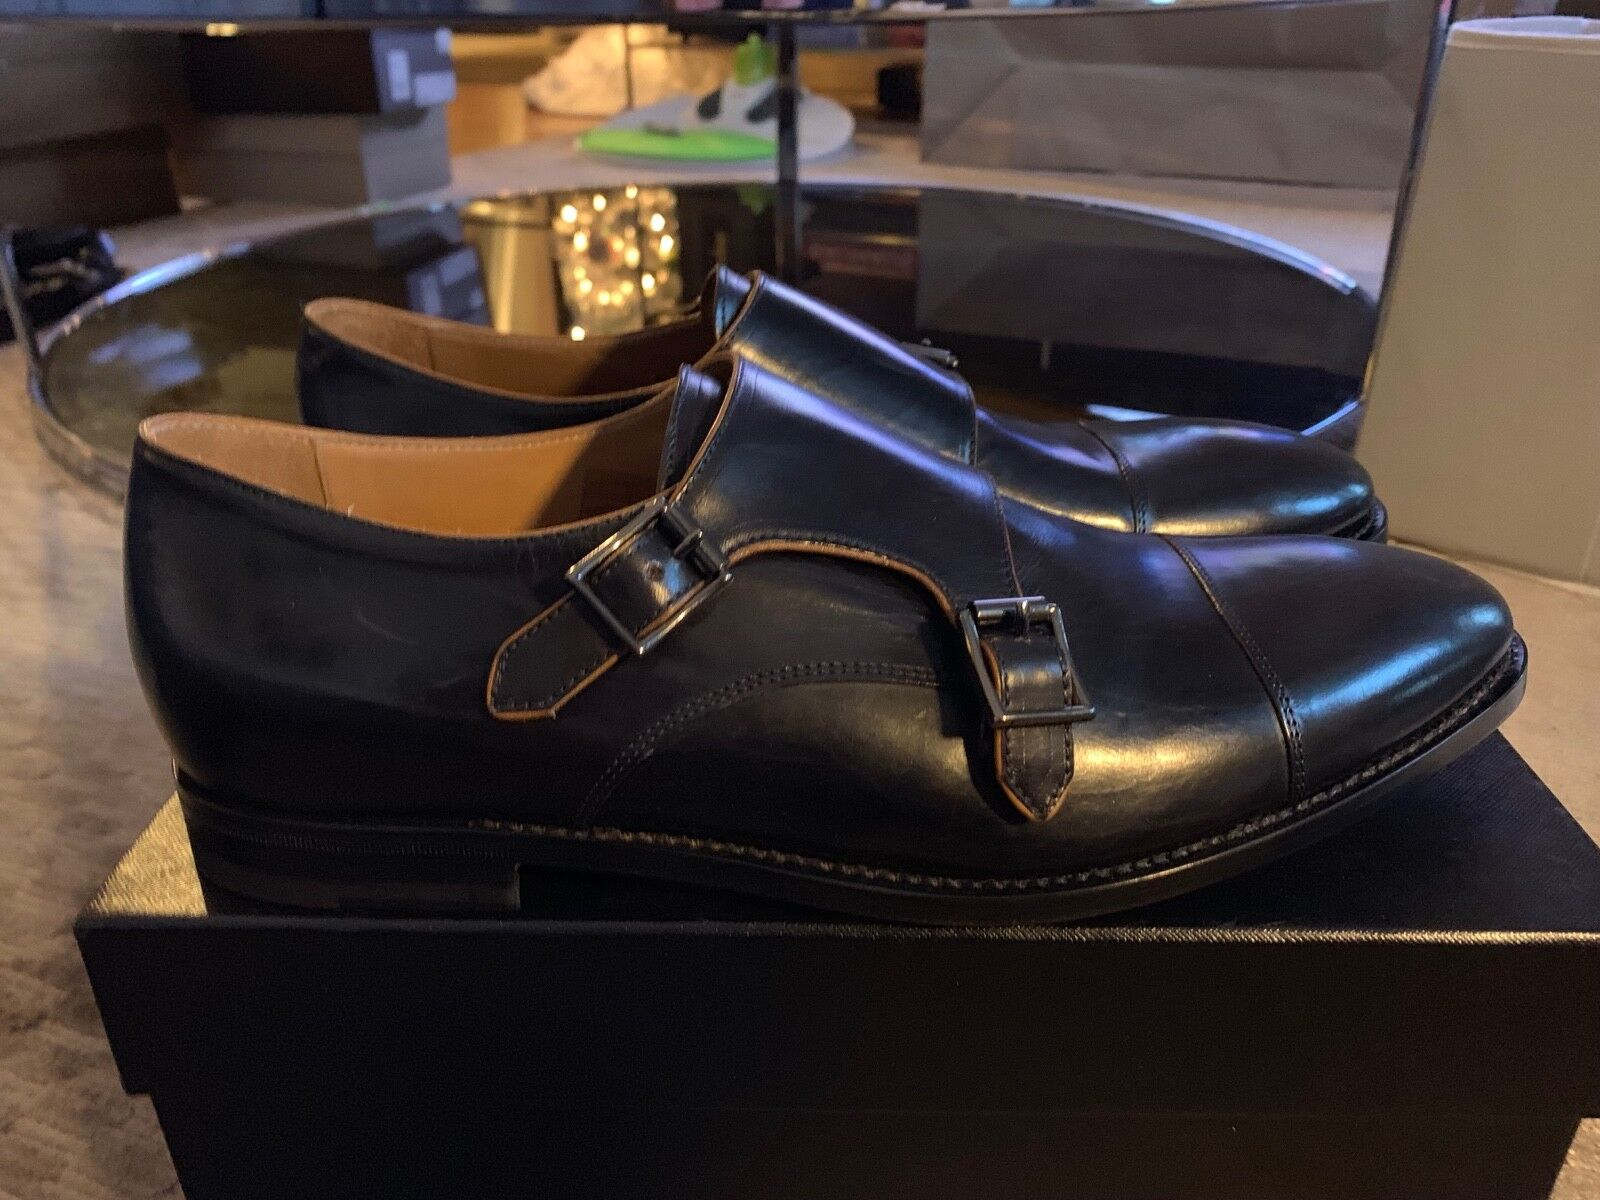 PAUL SMITH DOUBLE Monk Strap Cap Toe Chaussures en cuir détail  805 New in Box Noir